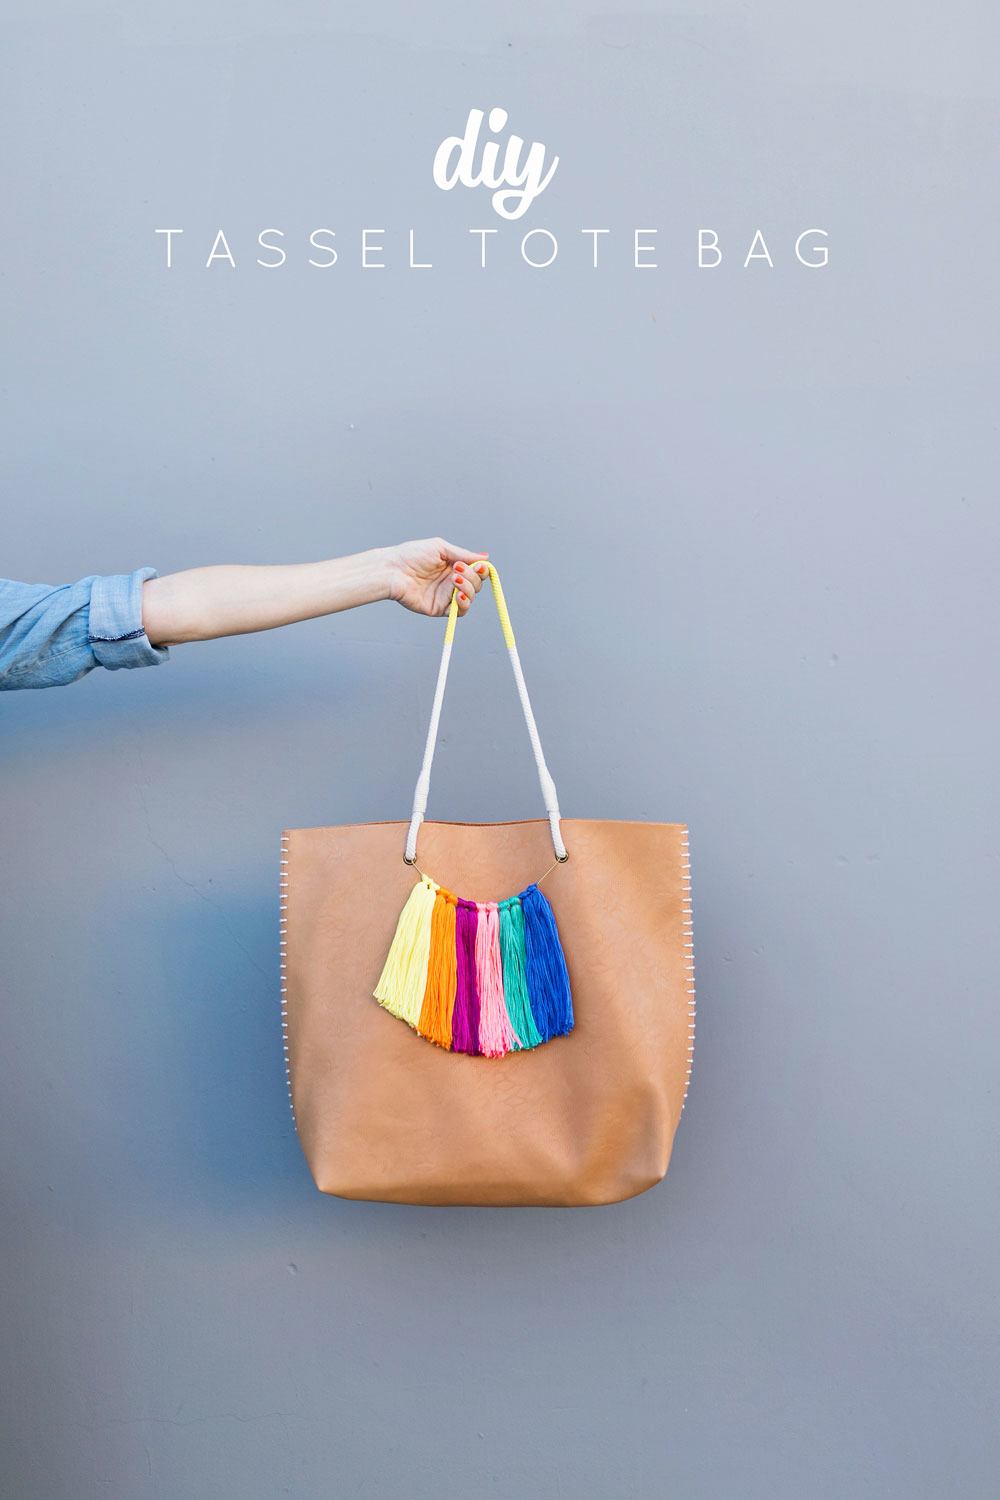 DIY TASSEL TOTE BAGTell Love and PartyTell Love and Party